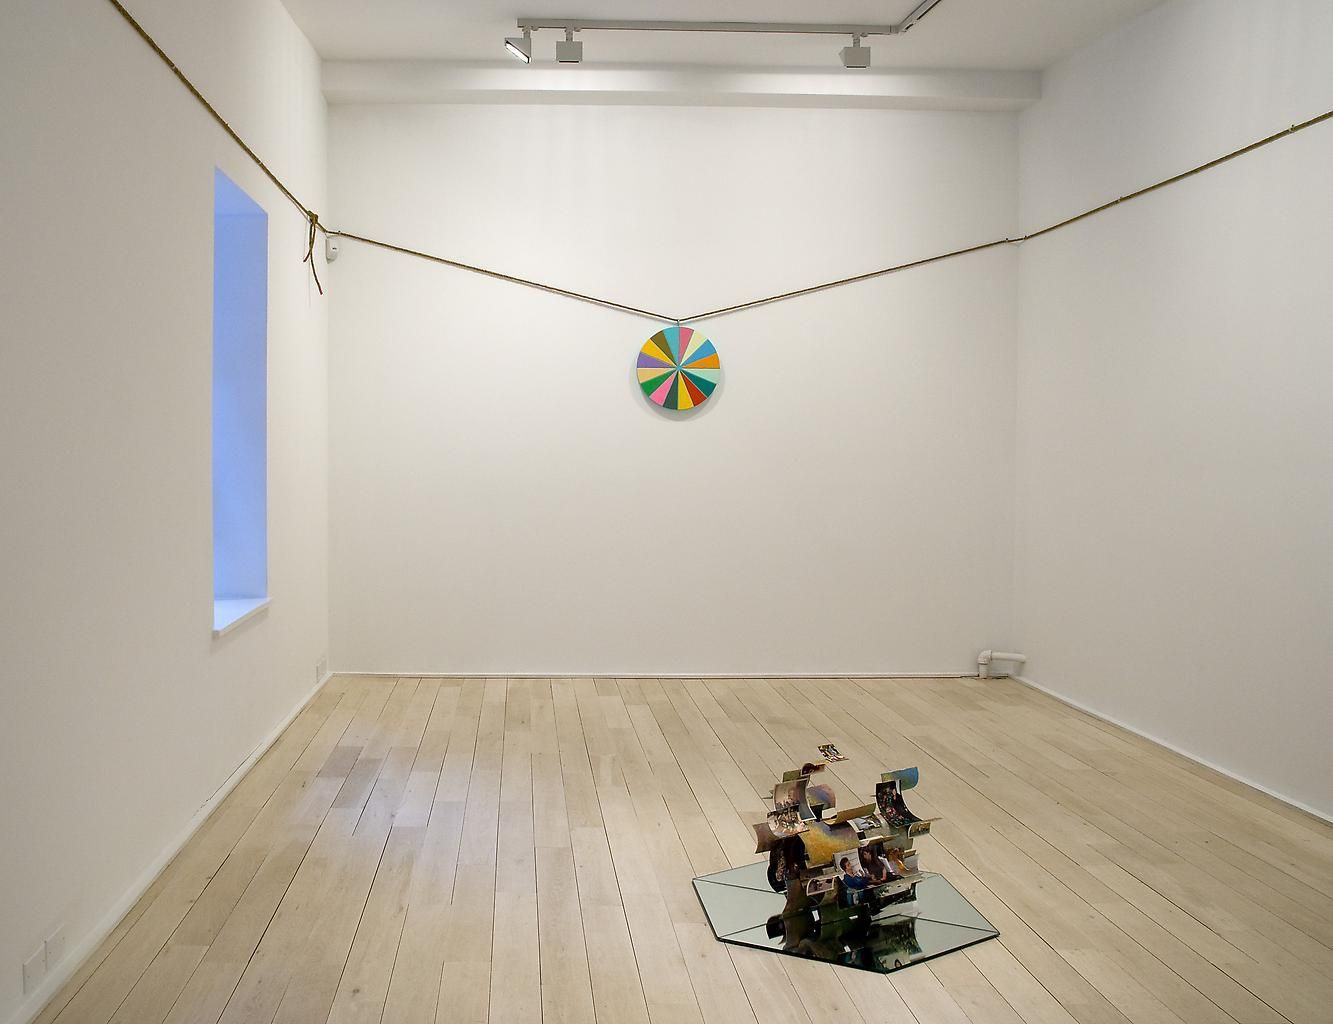 Installation view, Ry Rocklen, Good Heavens, Marc Jancou, New York, March 5 - April 11, 2009